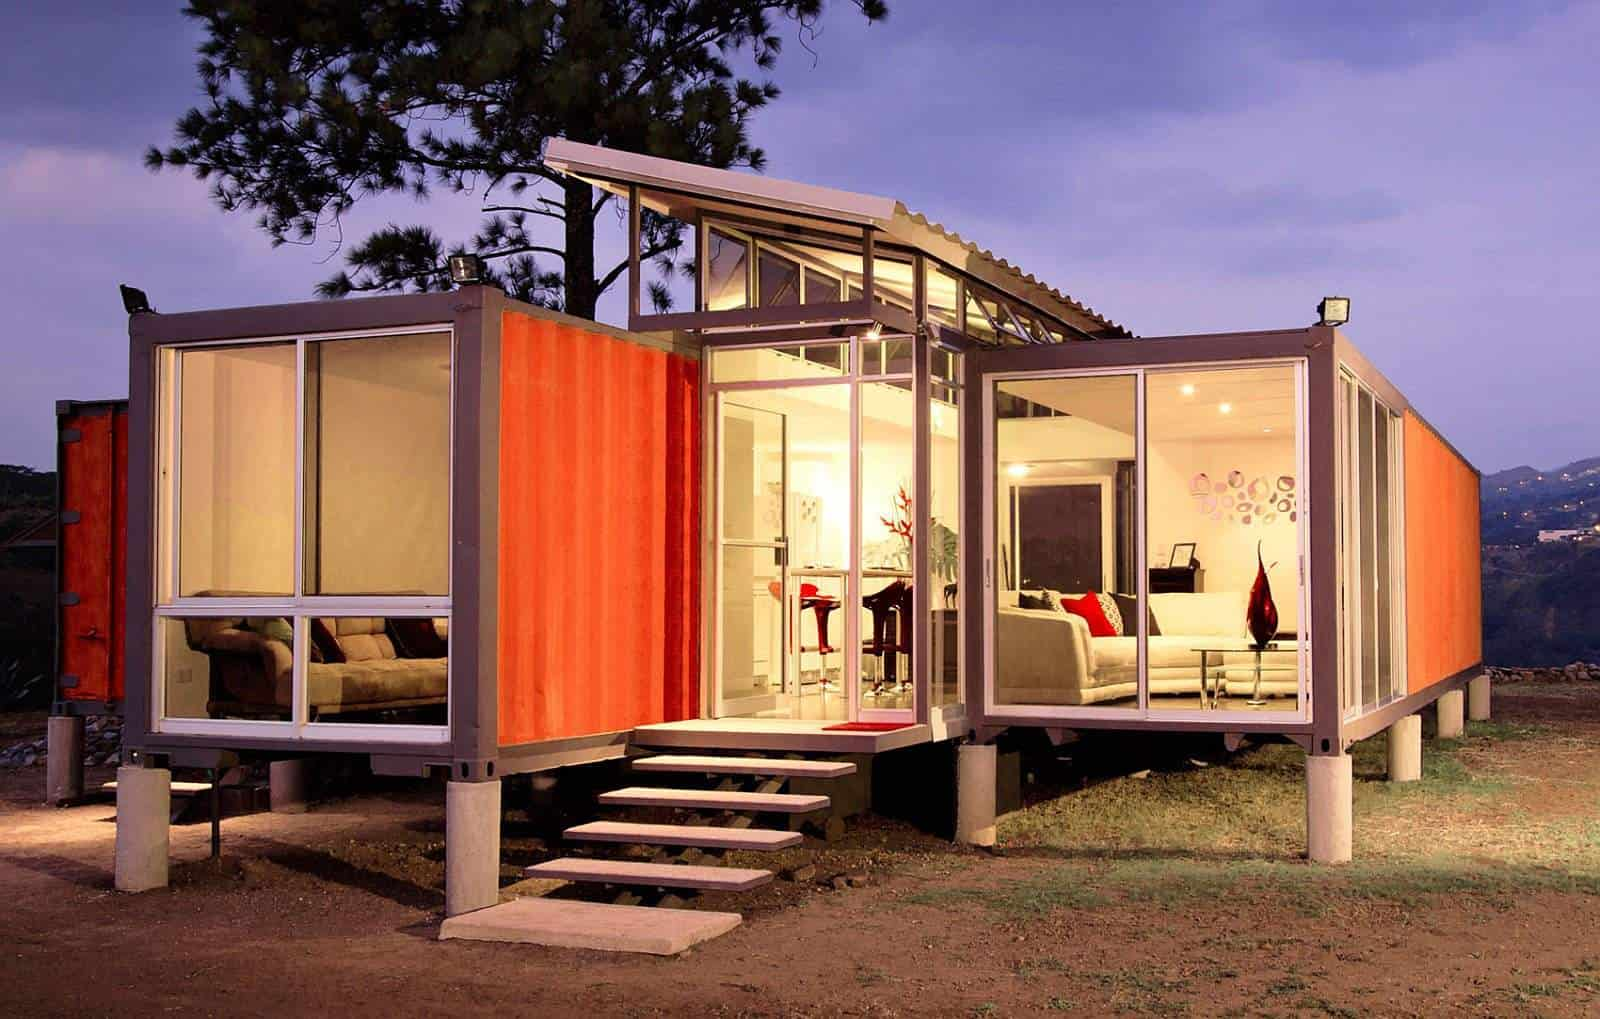 10 tricked-out tiny houses made from shipping containers